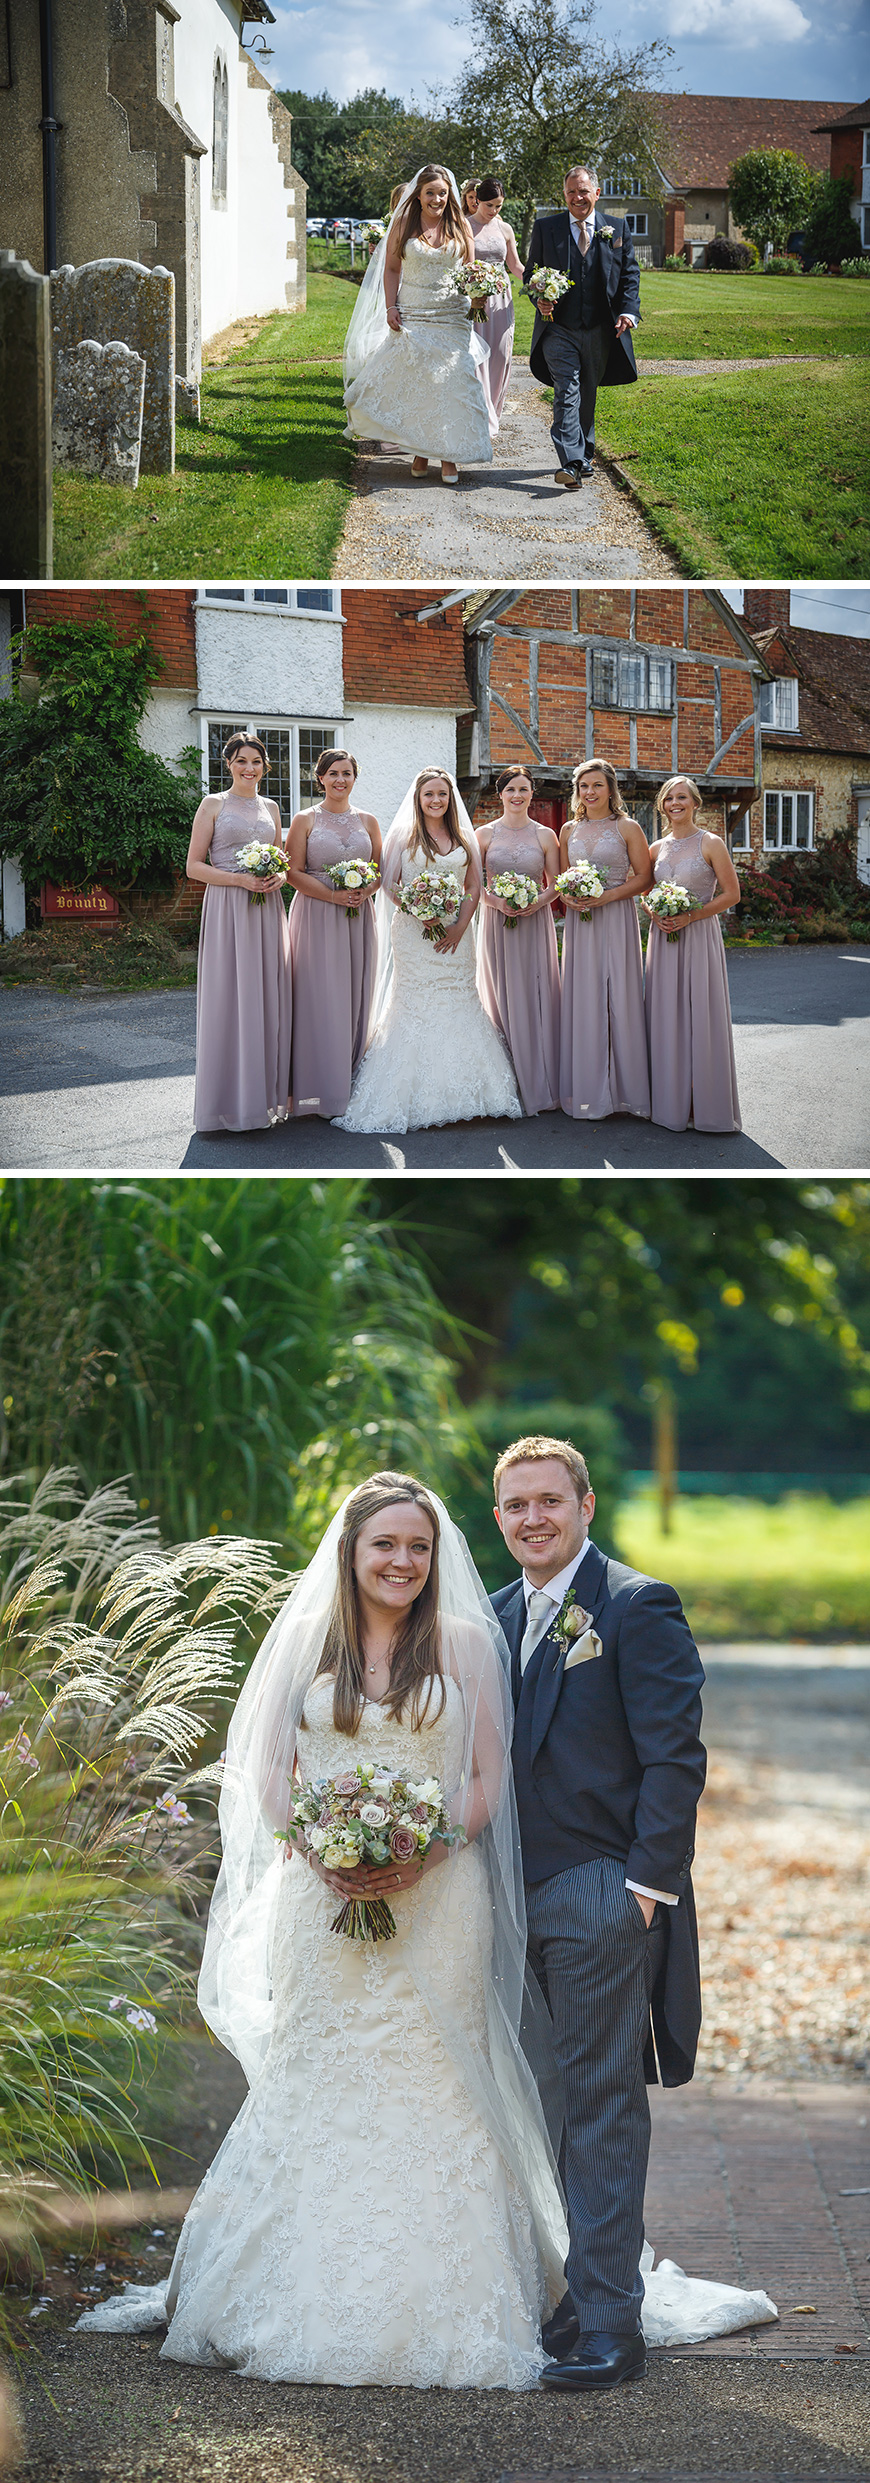 Real Wedding - Natalie & Dave's Idyllic Summer Wedding at Bury Court Barn | CHWV